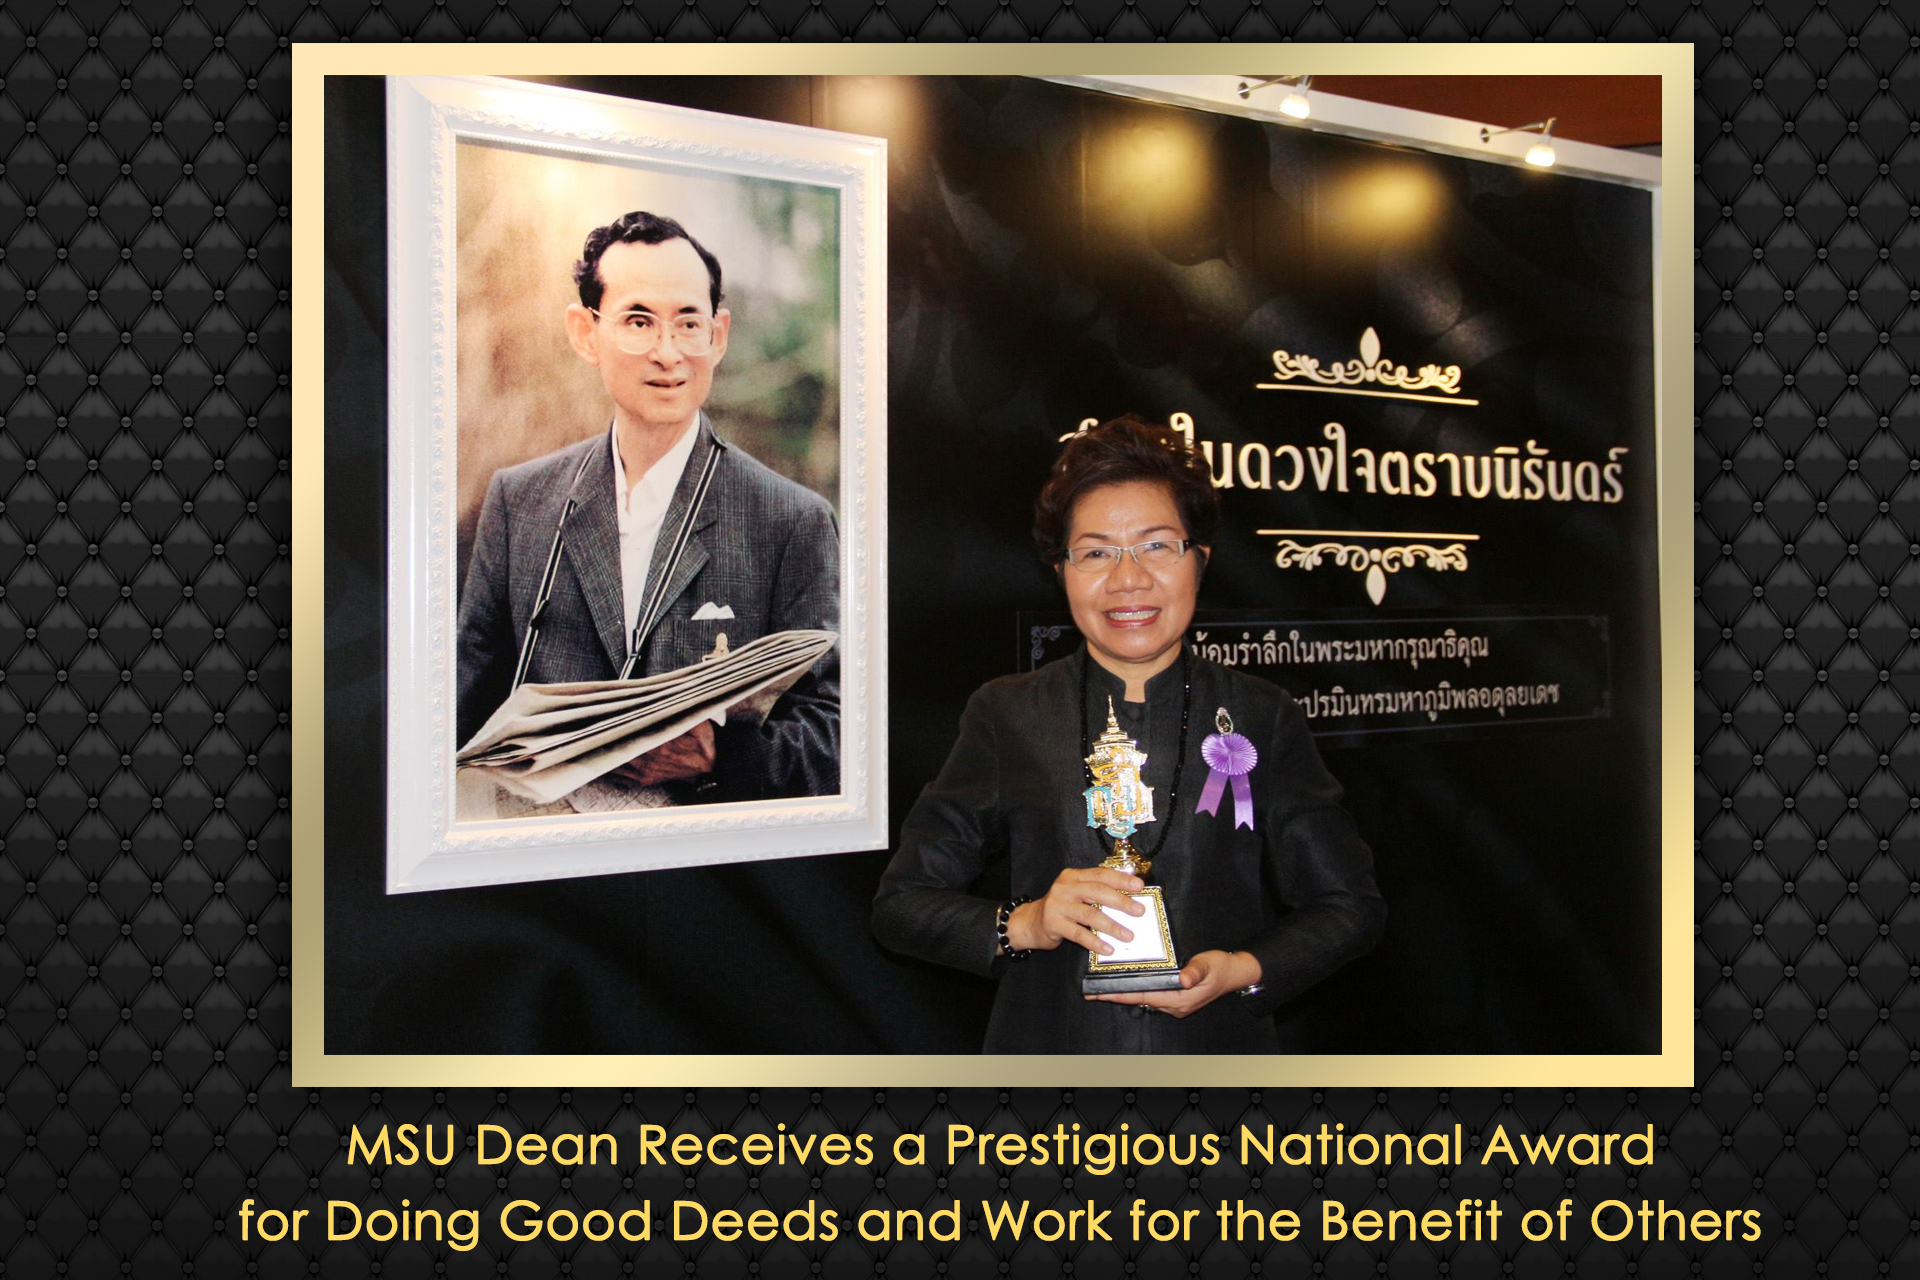 MSU Dean Receives a Prestigious National Award for Doing Good Deeds and Work for the Benefit of Others